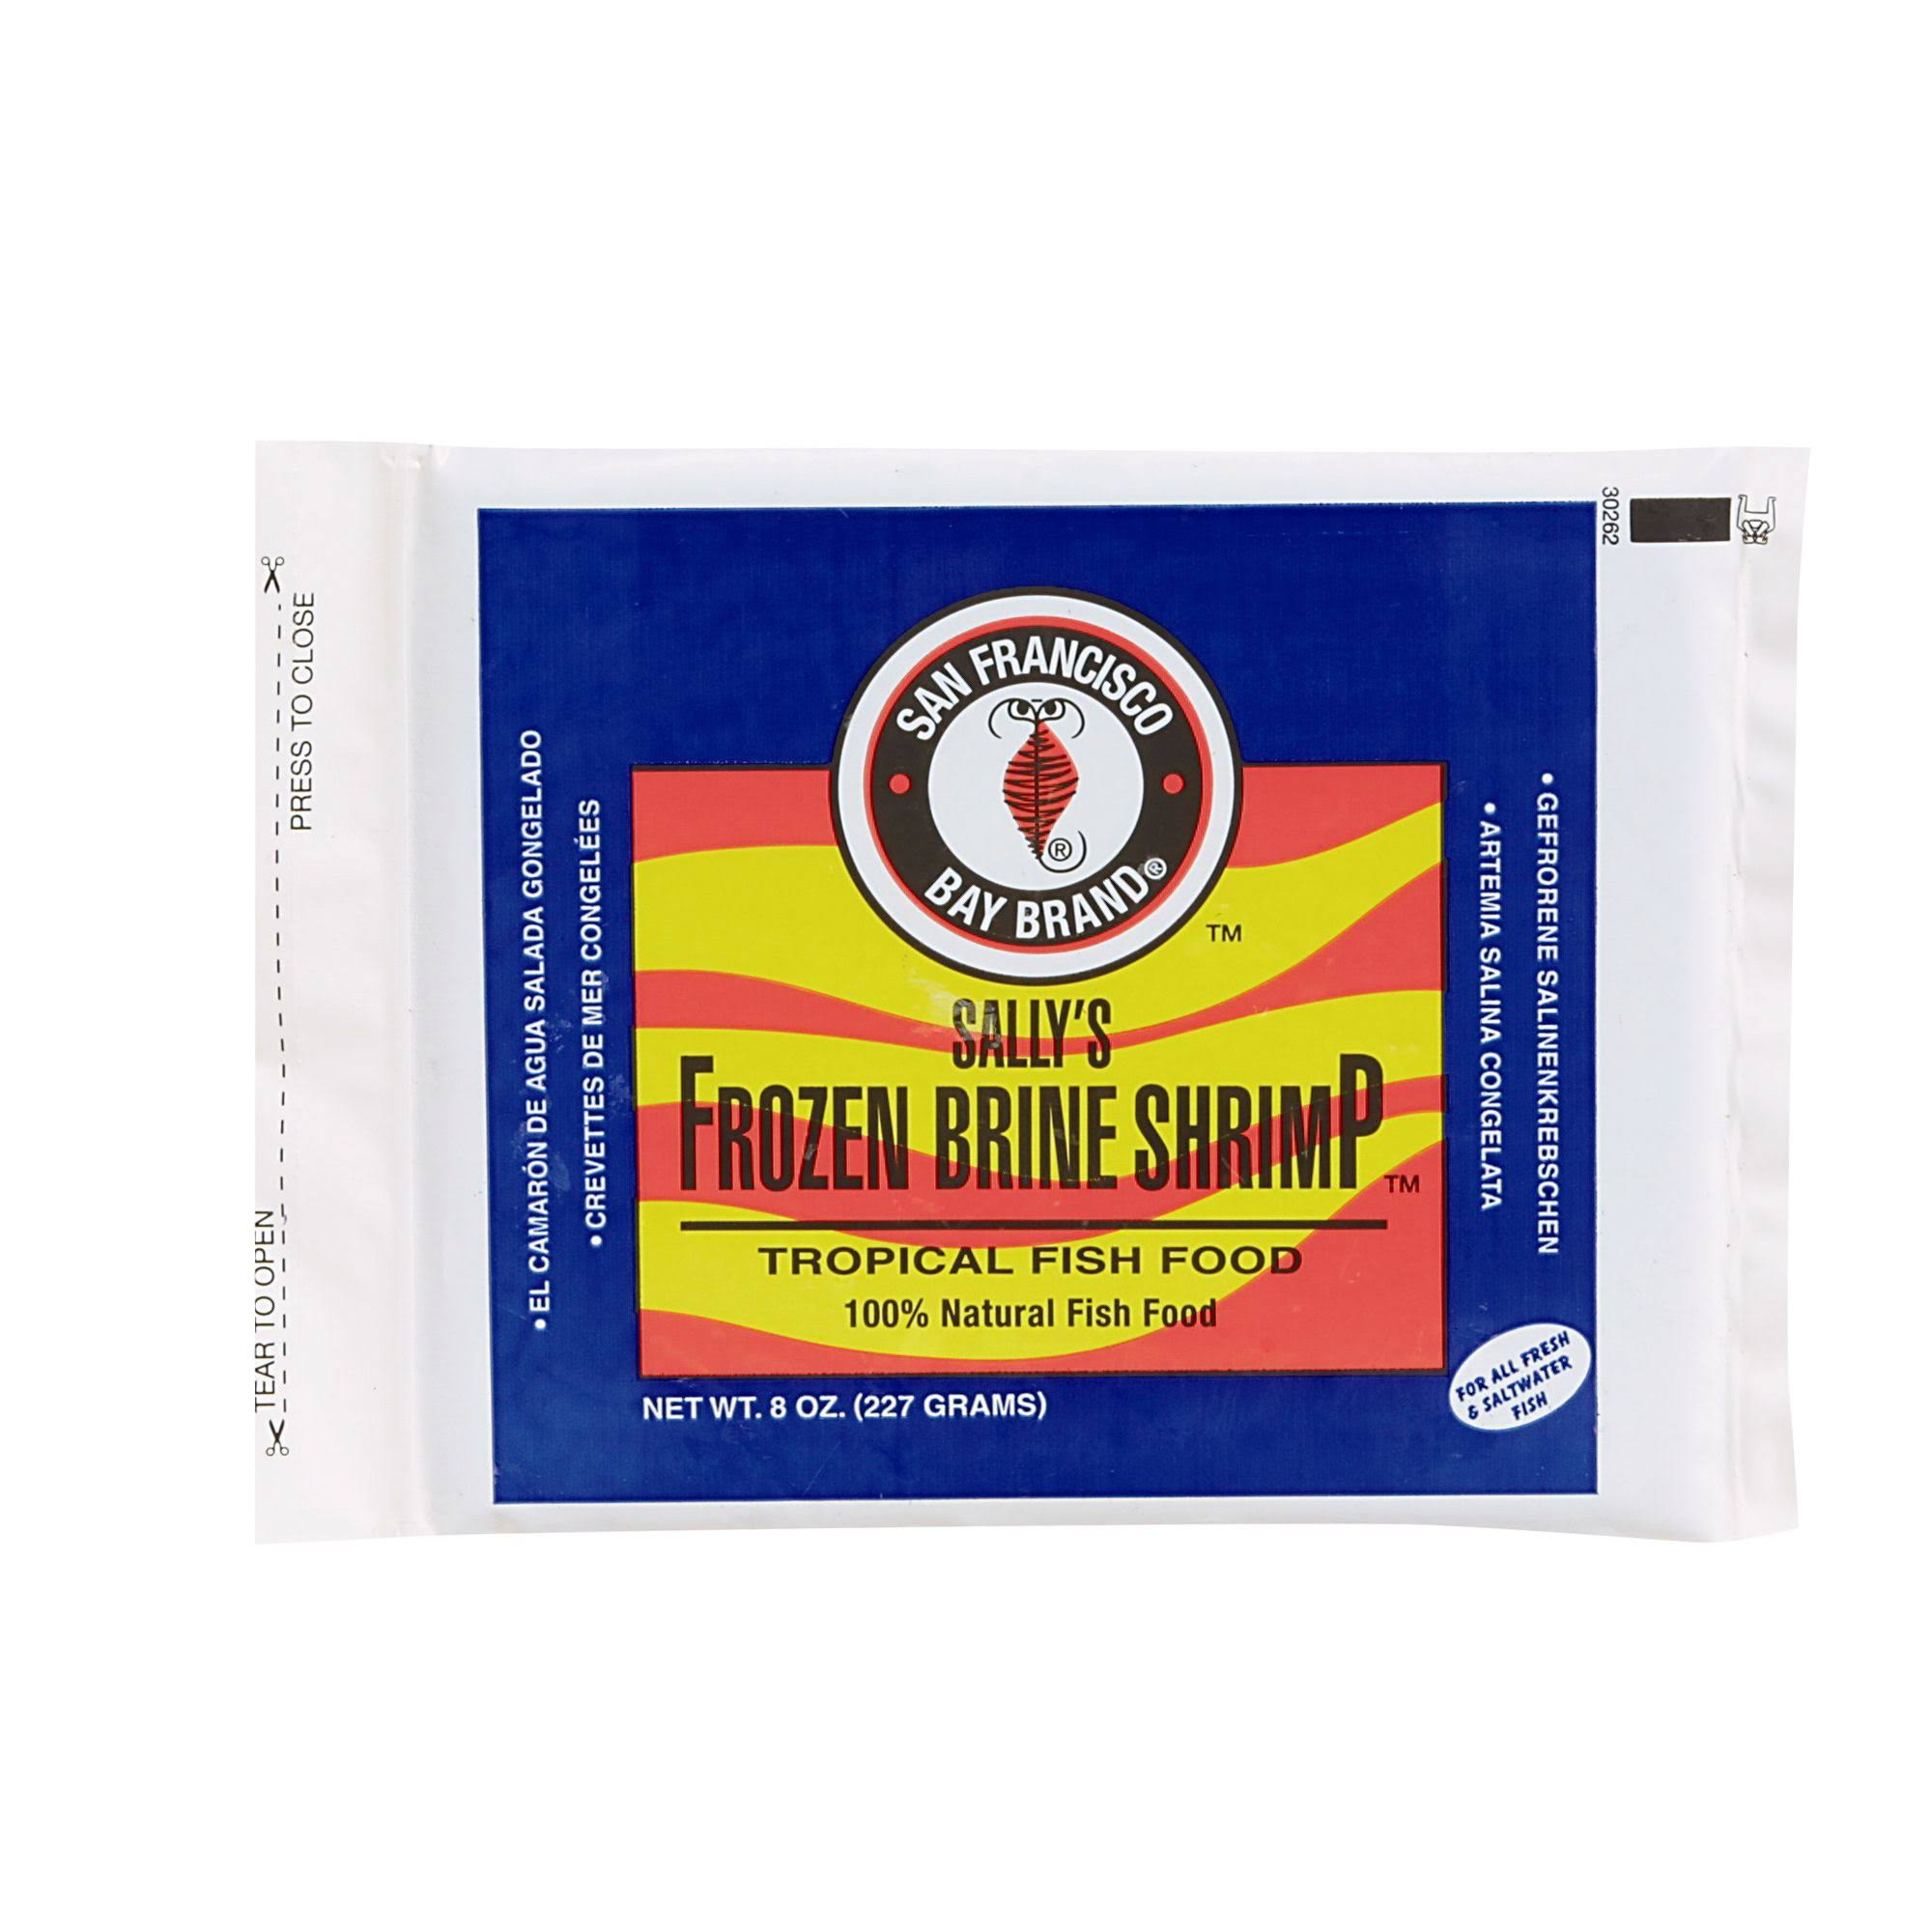 San Francisco Bay Sally's Frozen Brine Shrimp Fish Food